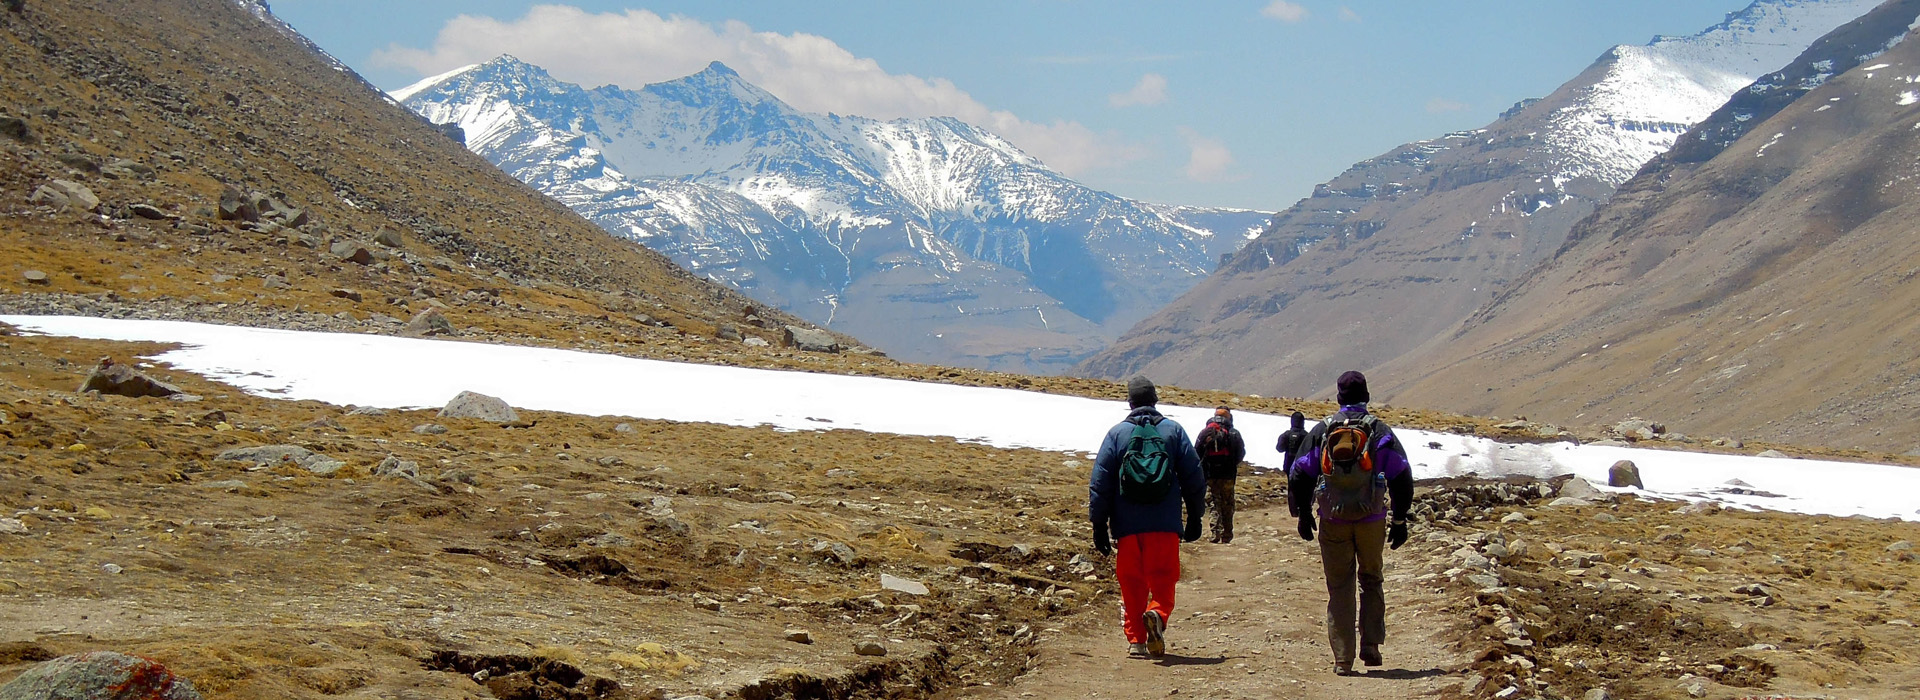 Tibet Hiking Tour